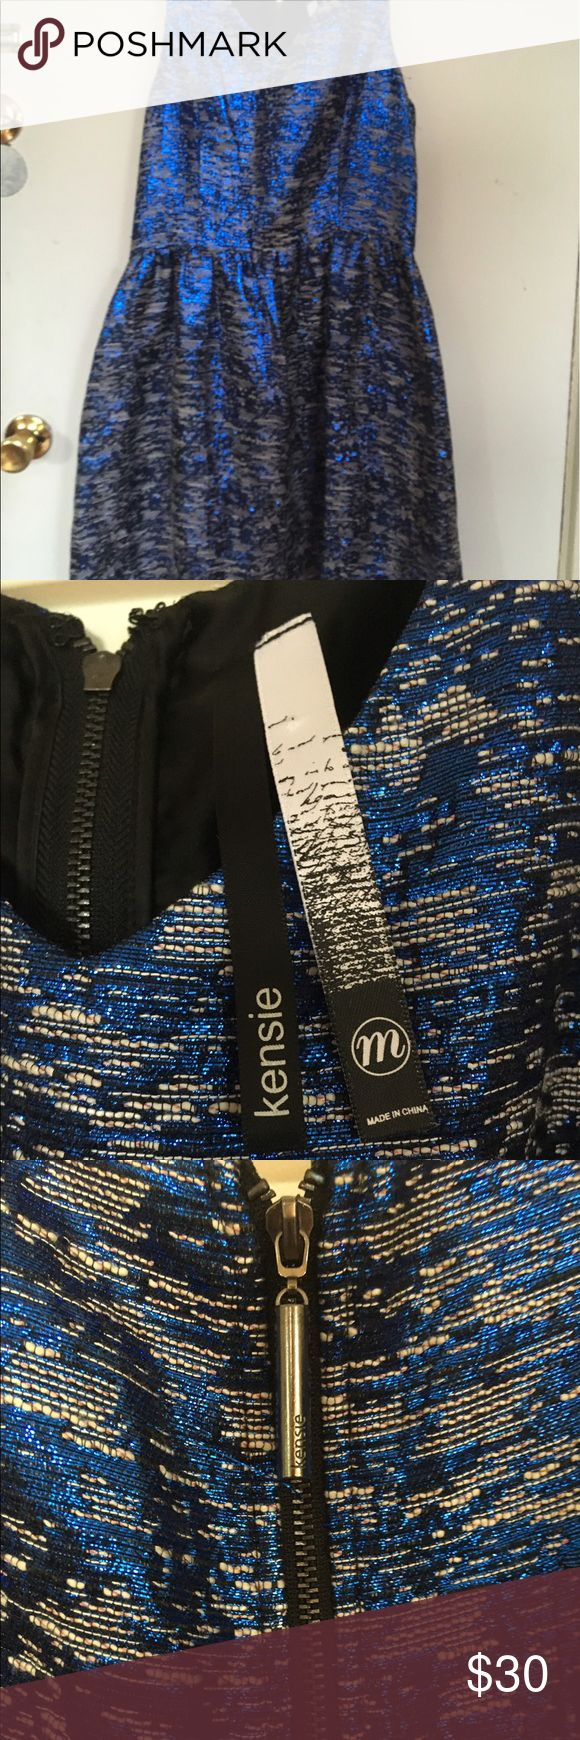 Blue, Silver and Black Sparkly Dress by Kensie This dress is SO sparkly and the colors are beautiful - very celebratory. It is brand new and has never been worn, but I did remove the tags before storing it. Fully-lined in black satin. Kensie Dresses Midi